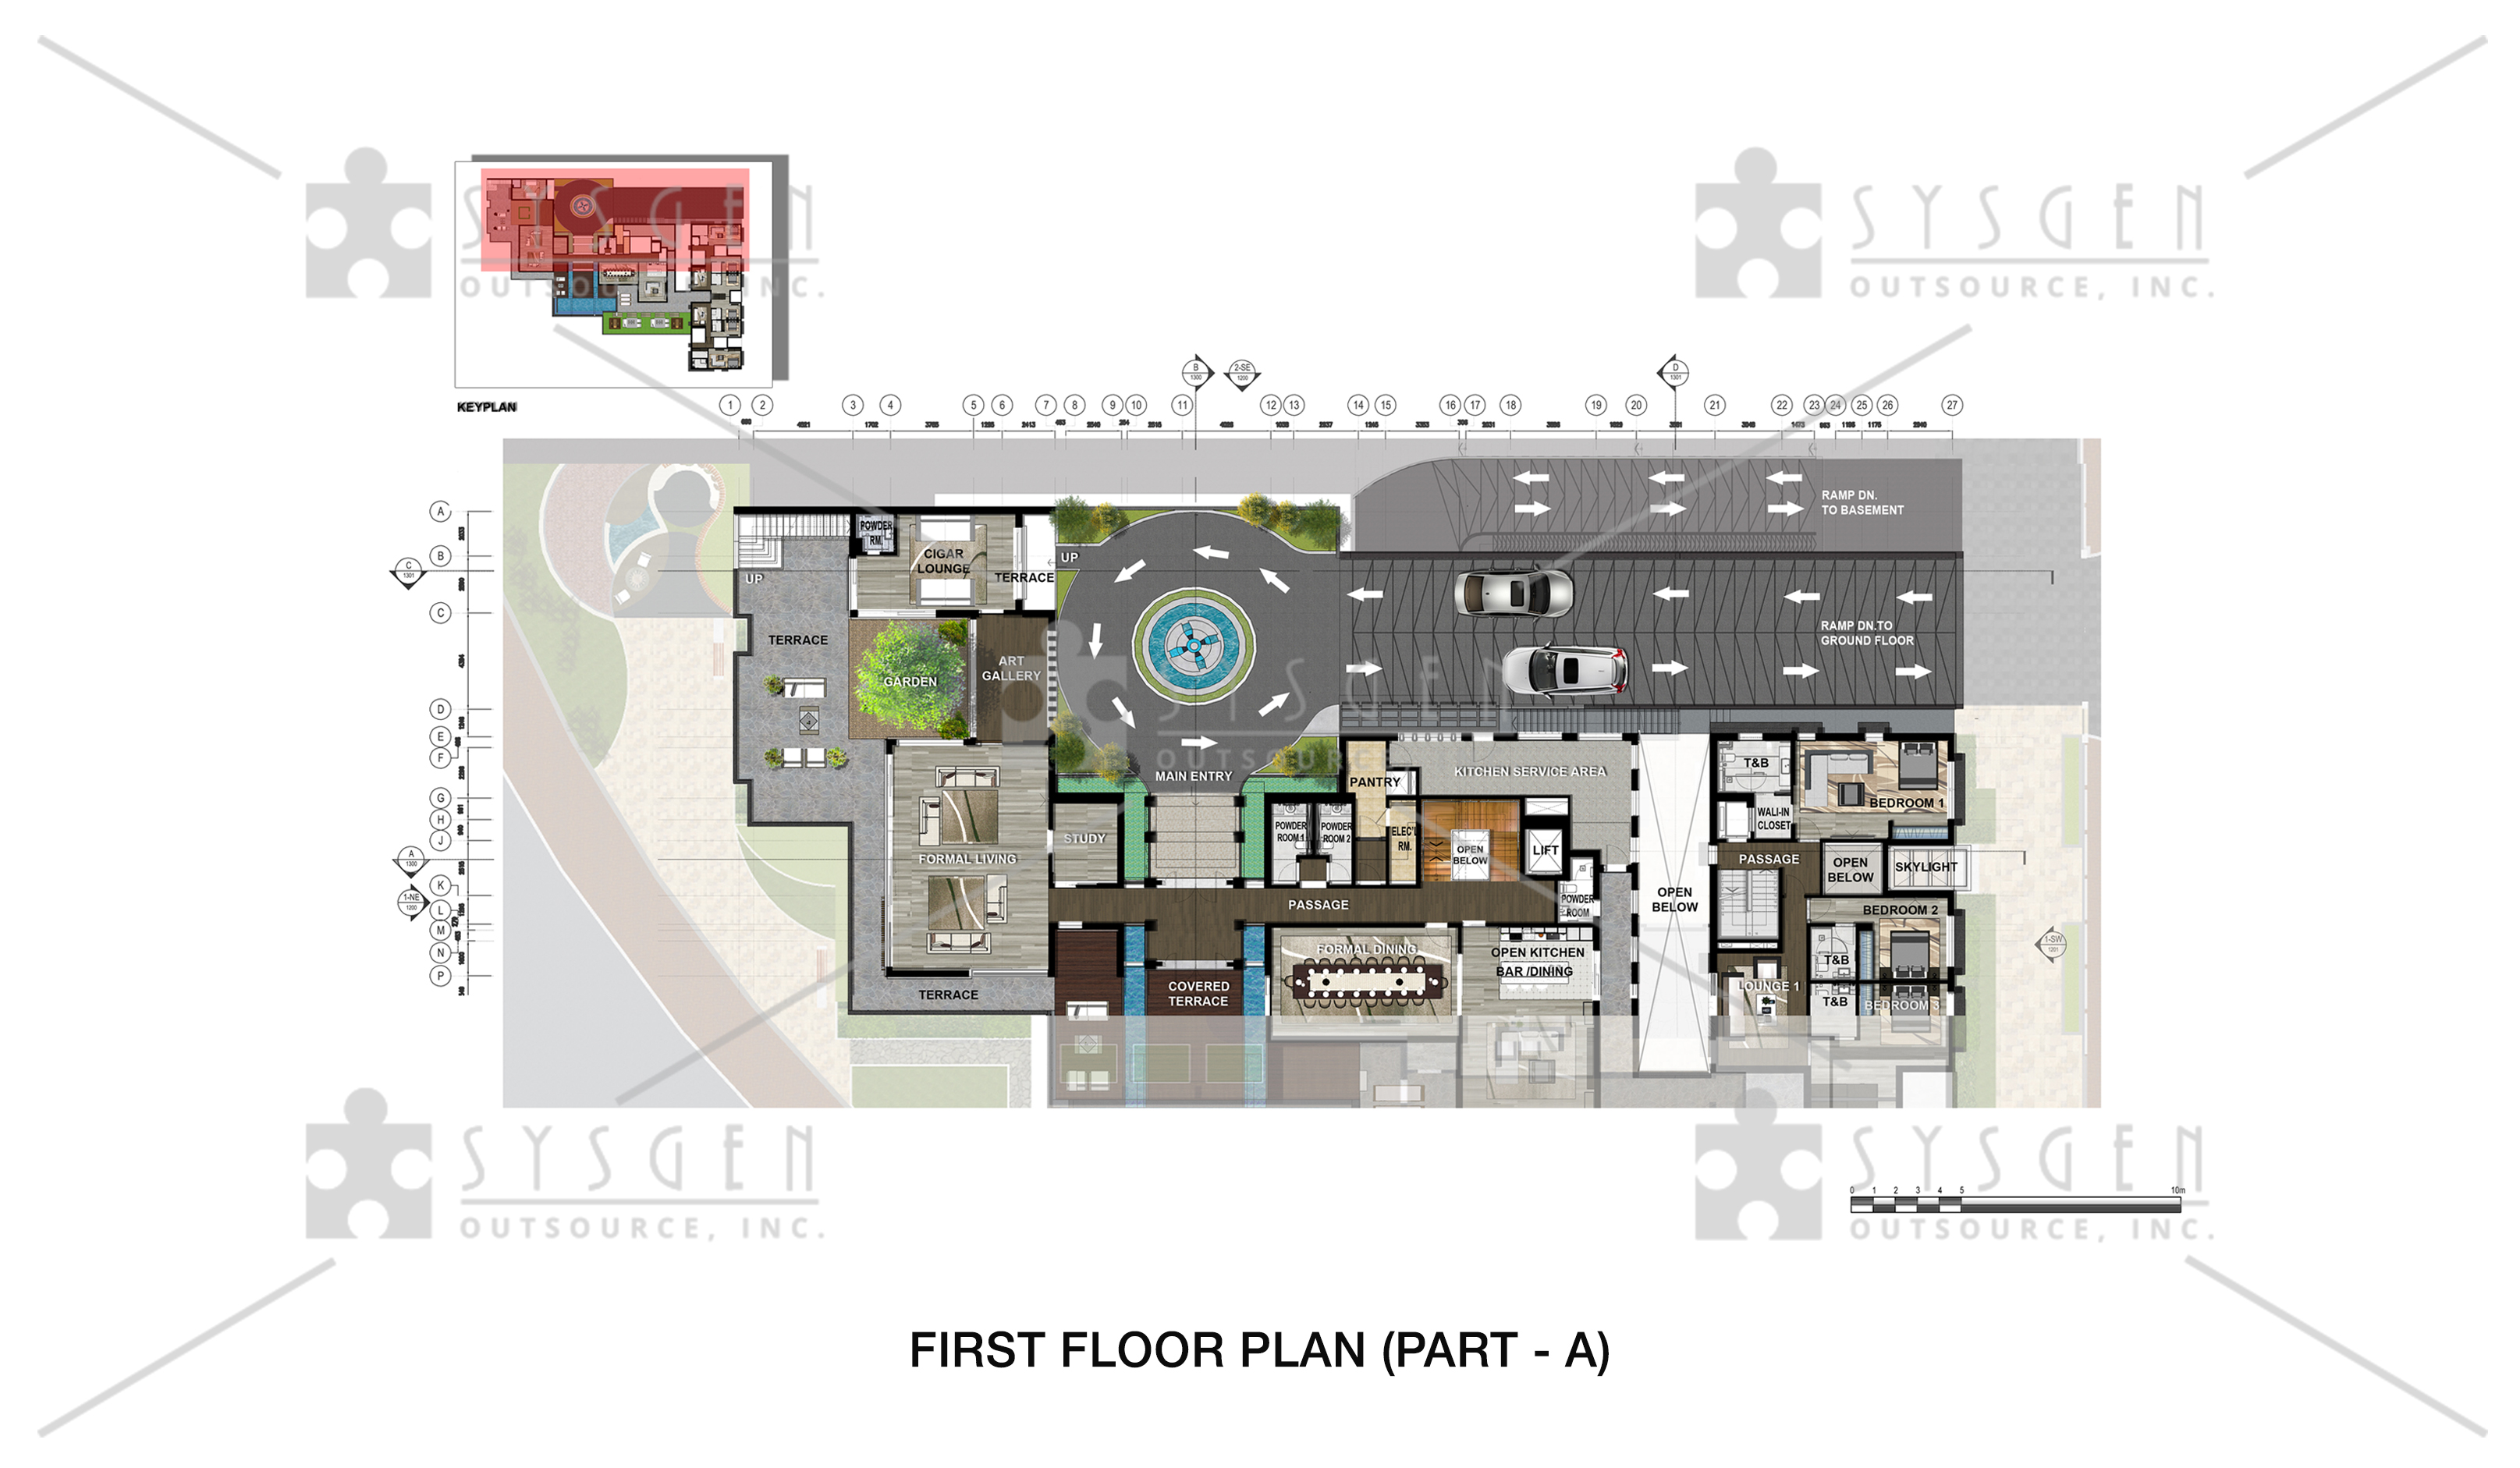 sysgen-outsource-cad-outsourcing-services-sketch-up-residential_villa-jj6